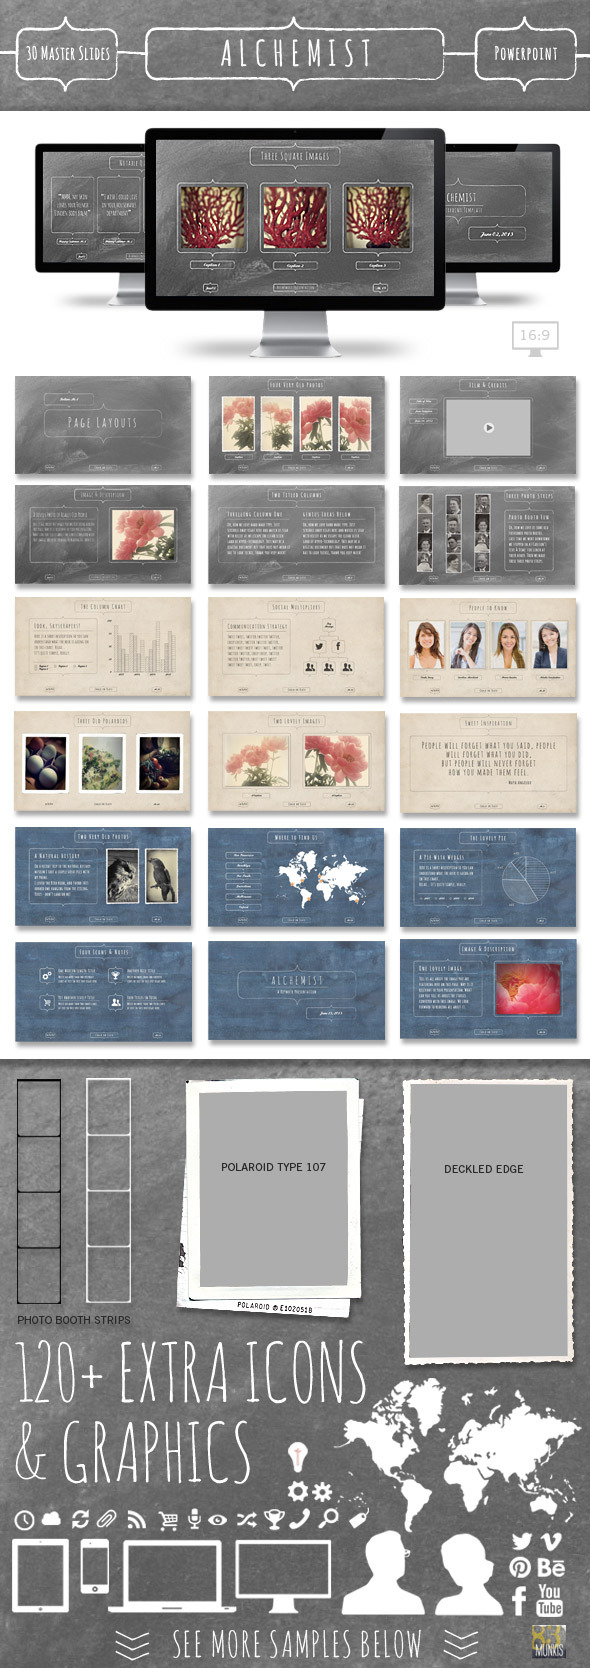 Alchemist Powerpoint Template by 83MUNKIS | GraphicRiver